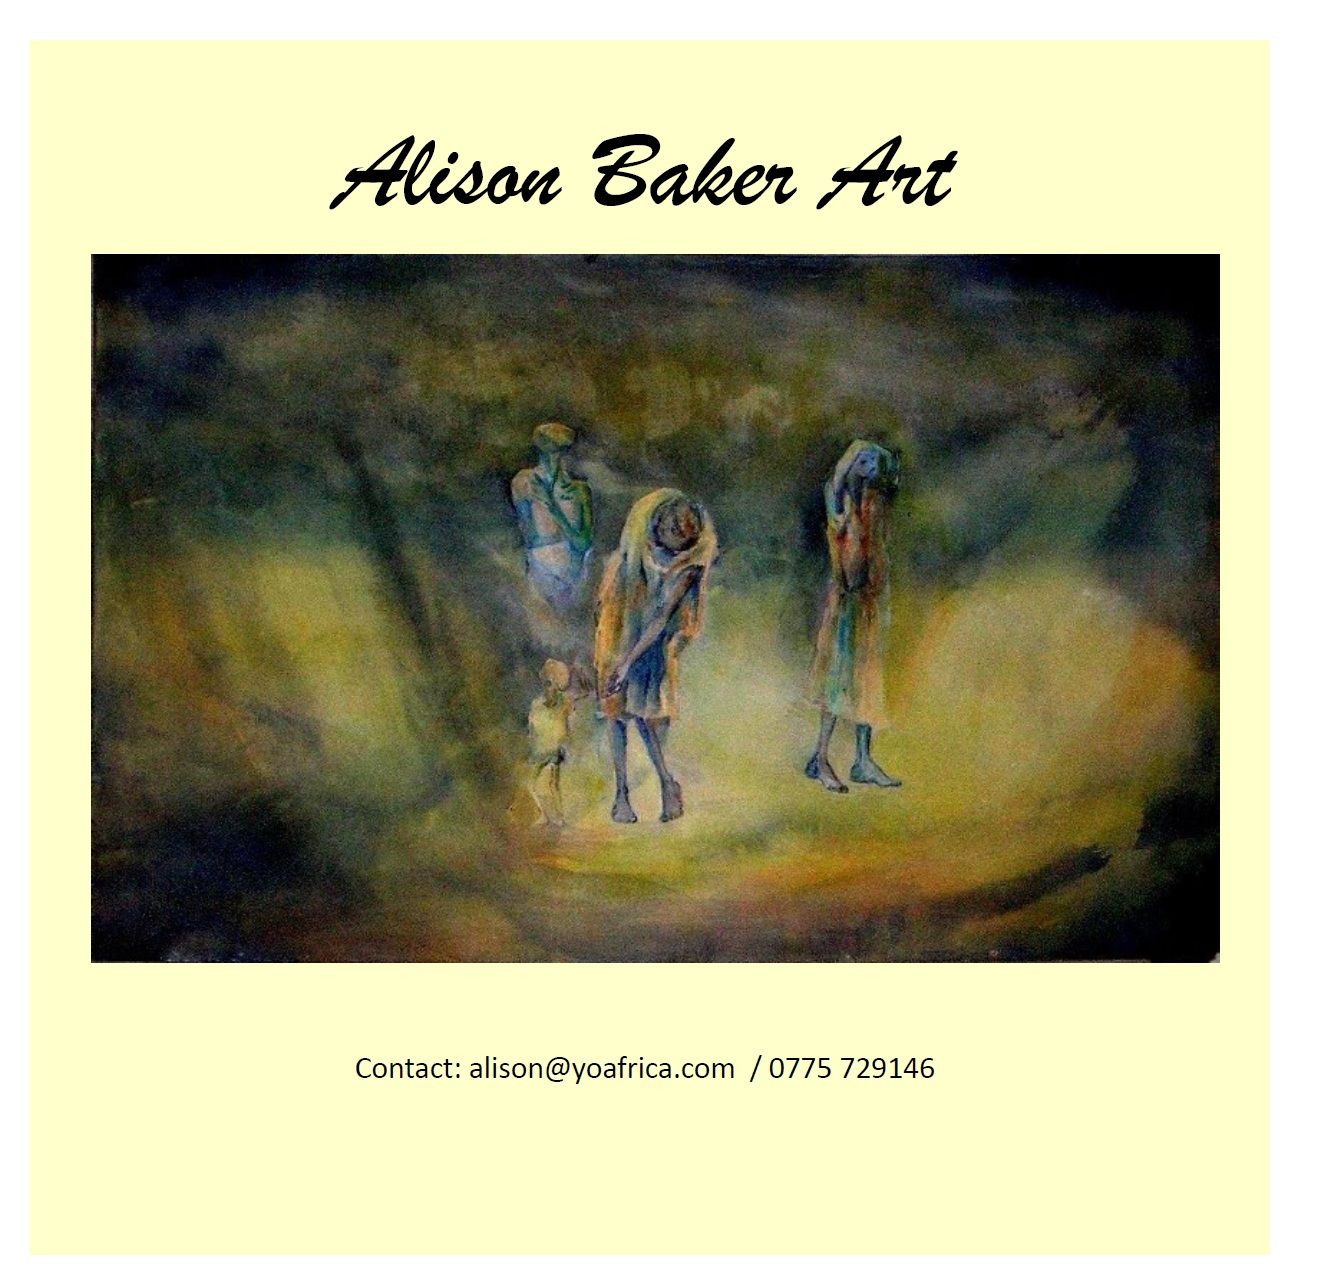 ALISON_BAKER_ART_THE_OTHERS